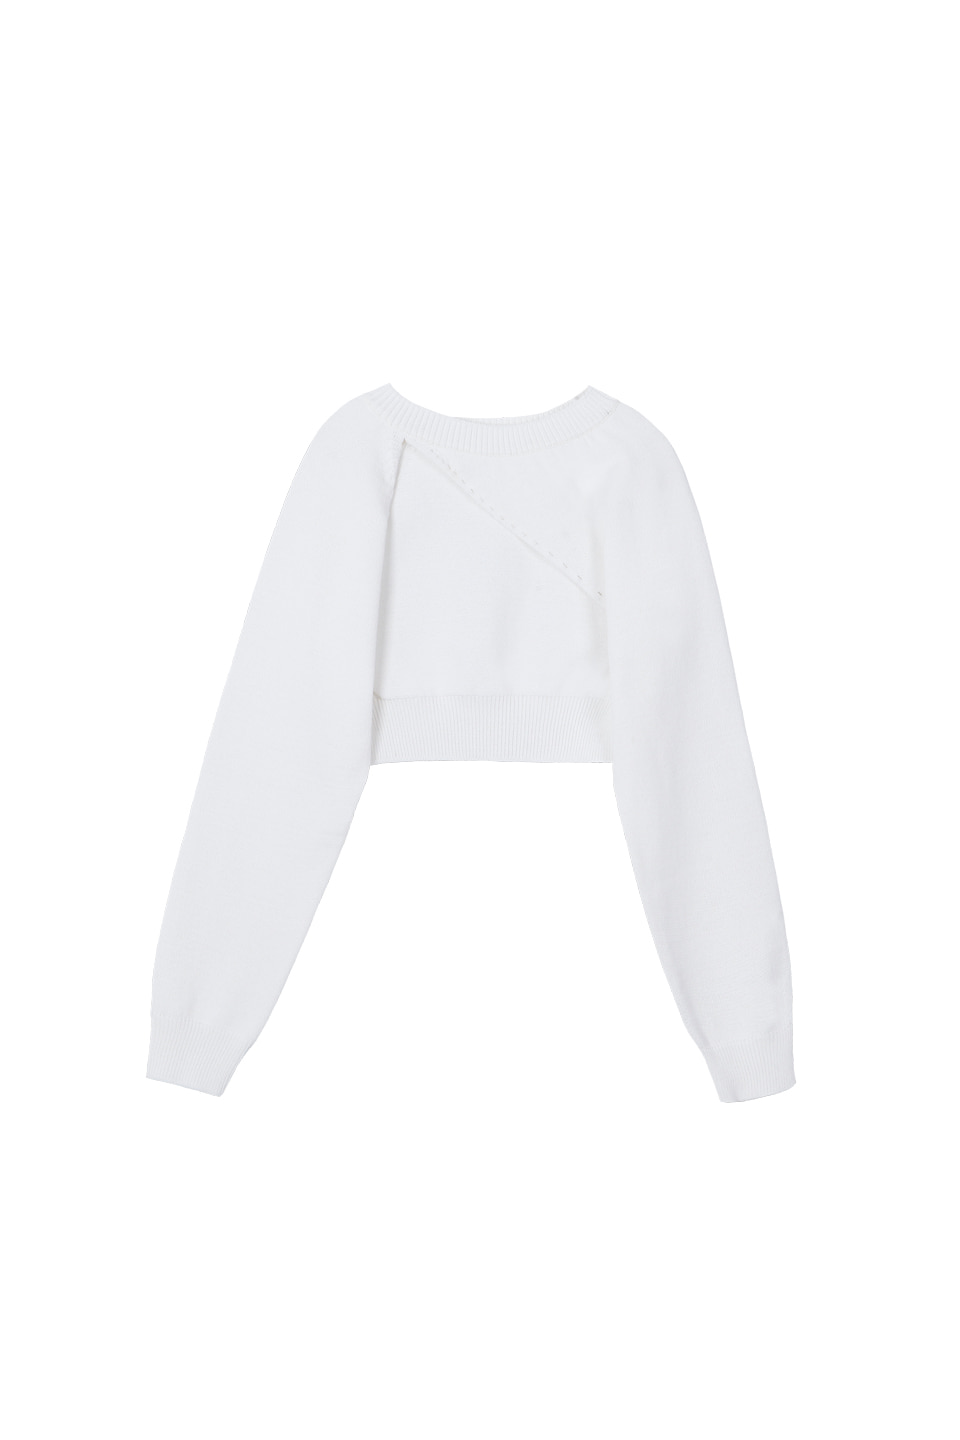 (13차재입고) SS UNBALANCE BOLERO KNIT TOP - WHITE (4/28일 예약배송)